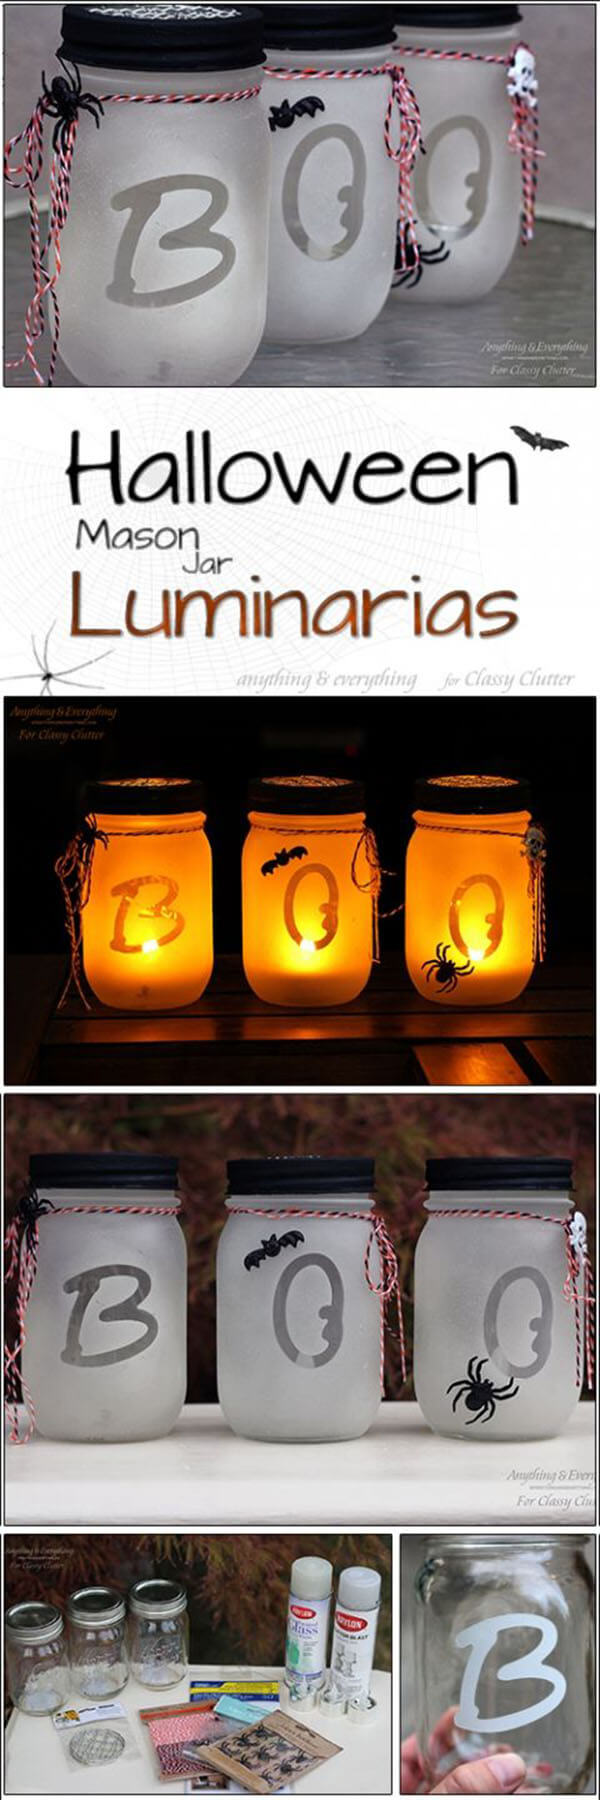 "DIY Mason Jar Halloween Crafts: Easy ""Boo"" Halloween Mason Jar Crafts"